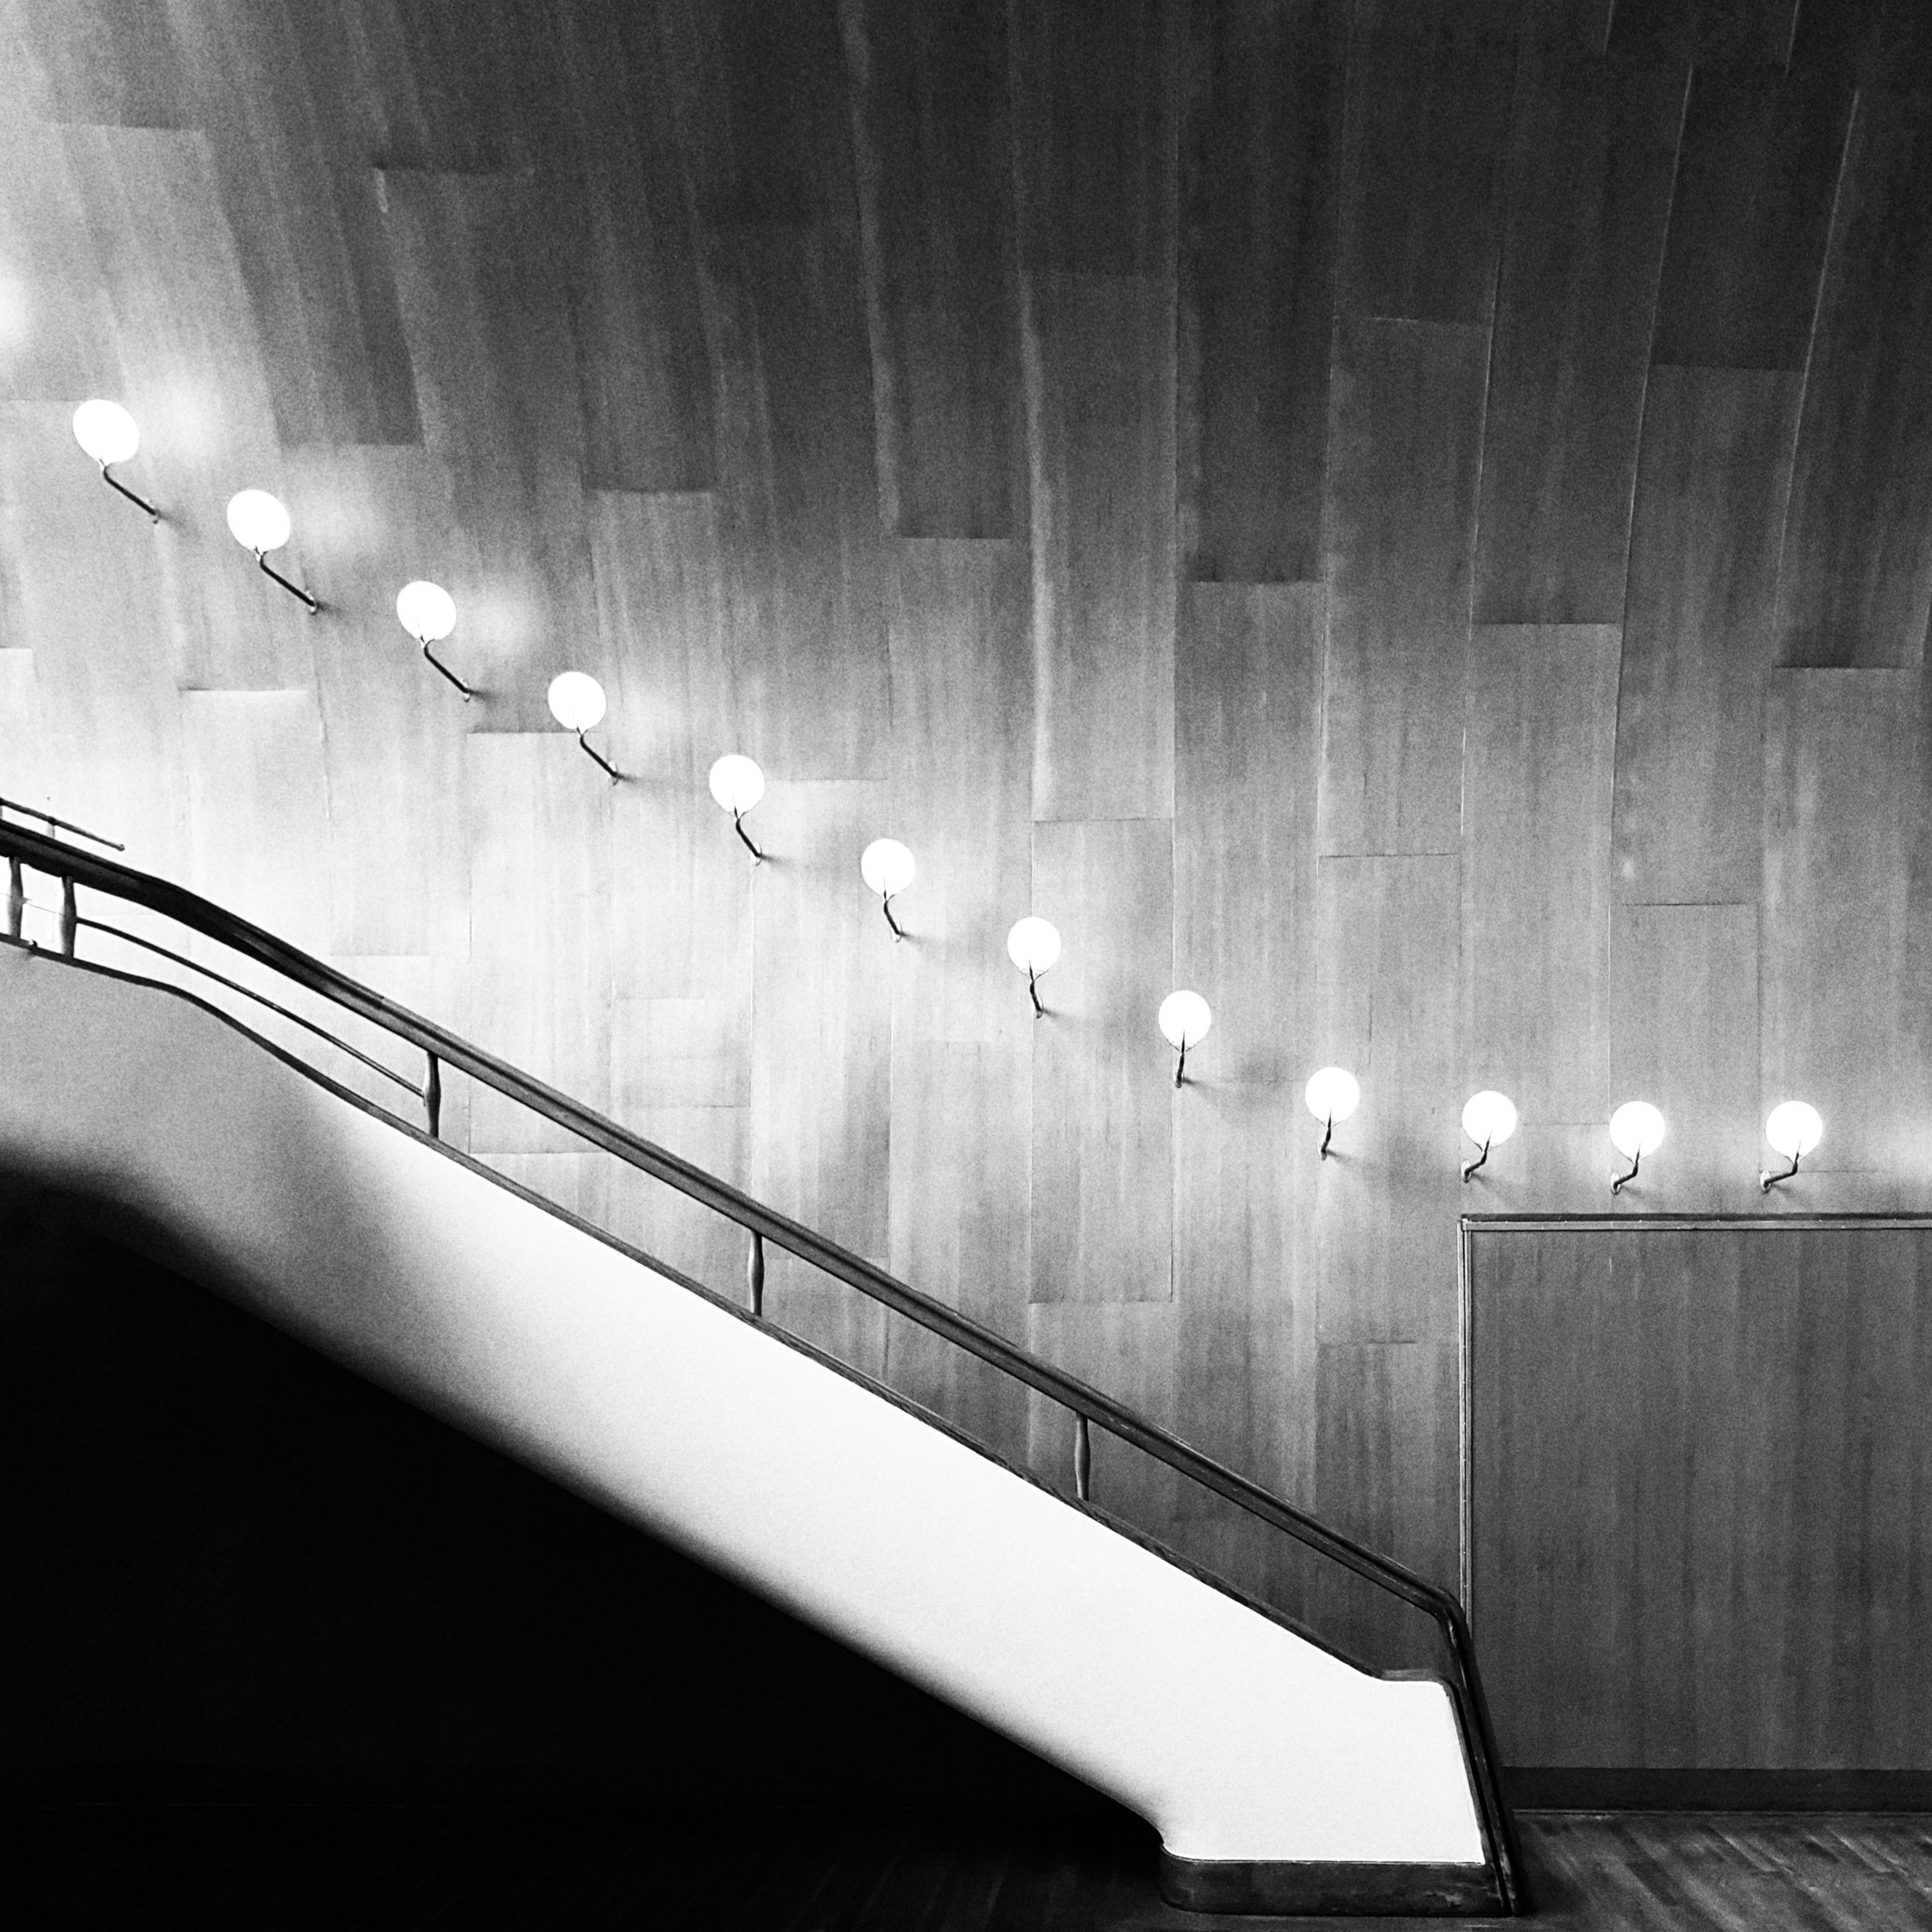 Day 90 - March 31: Stairway